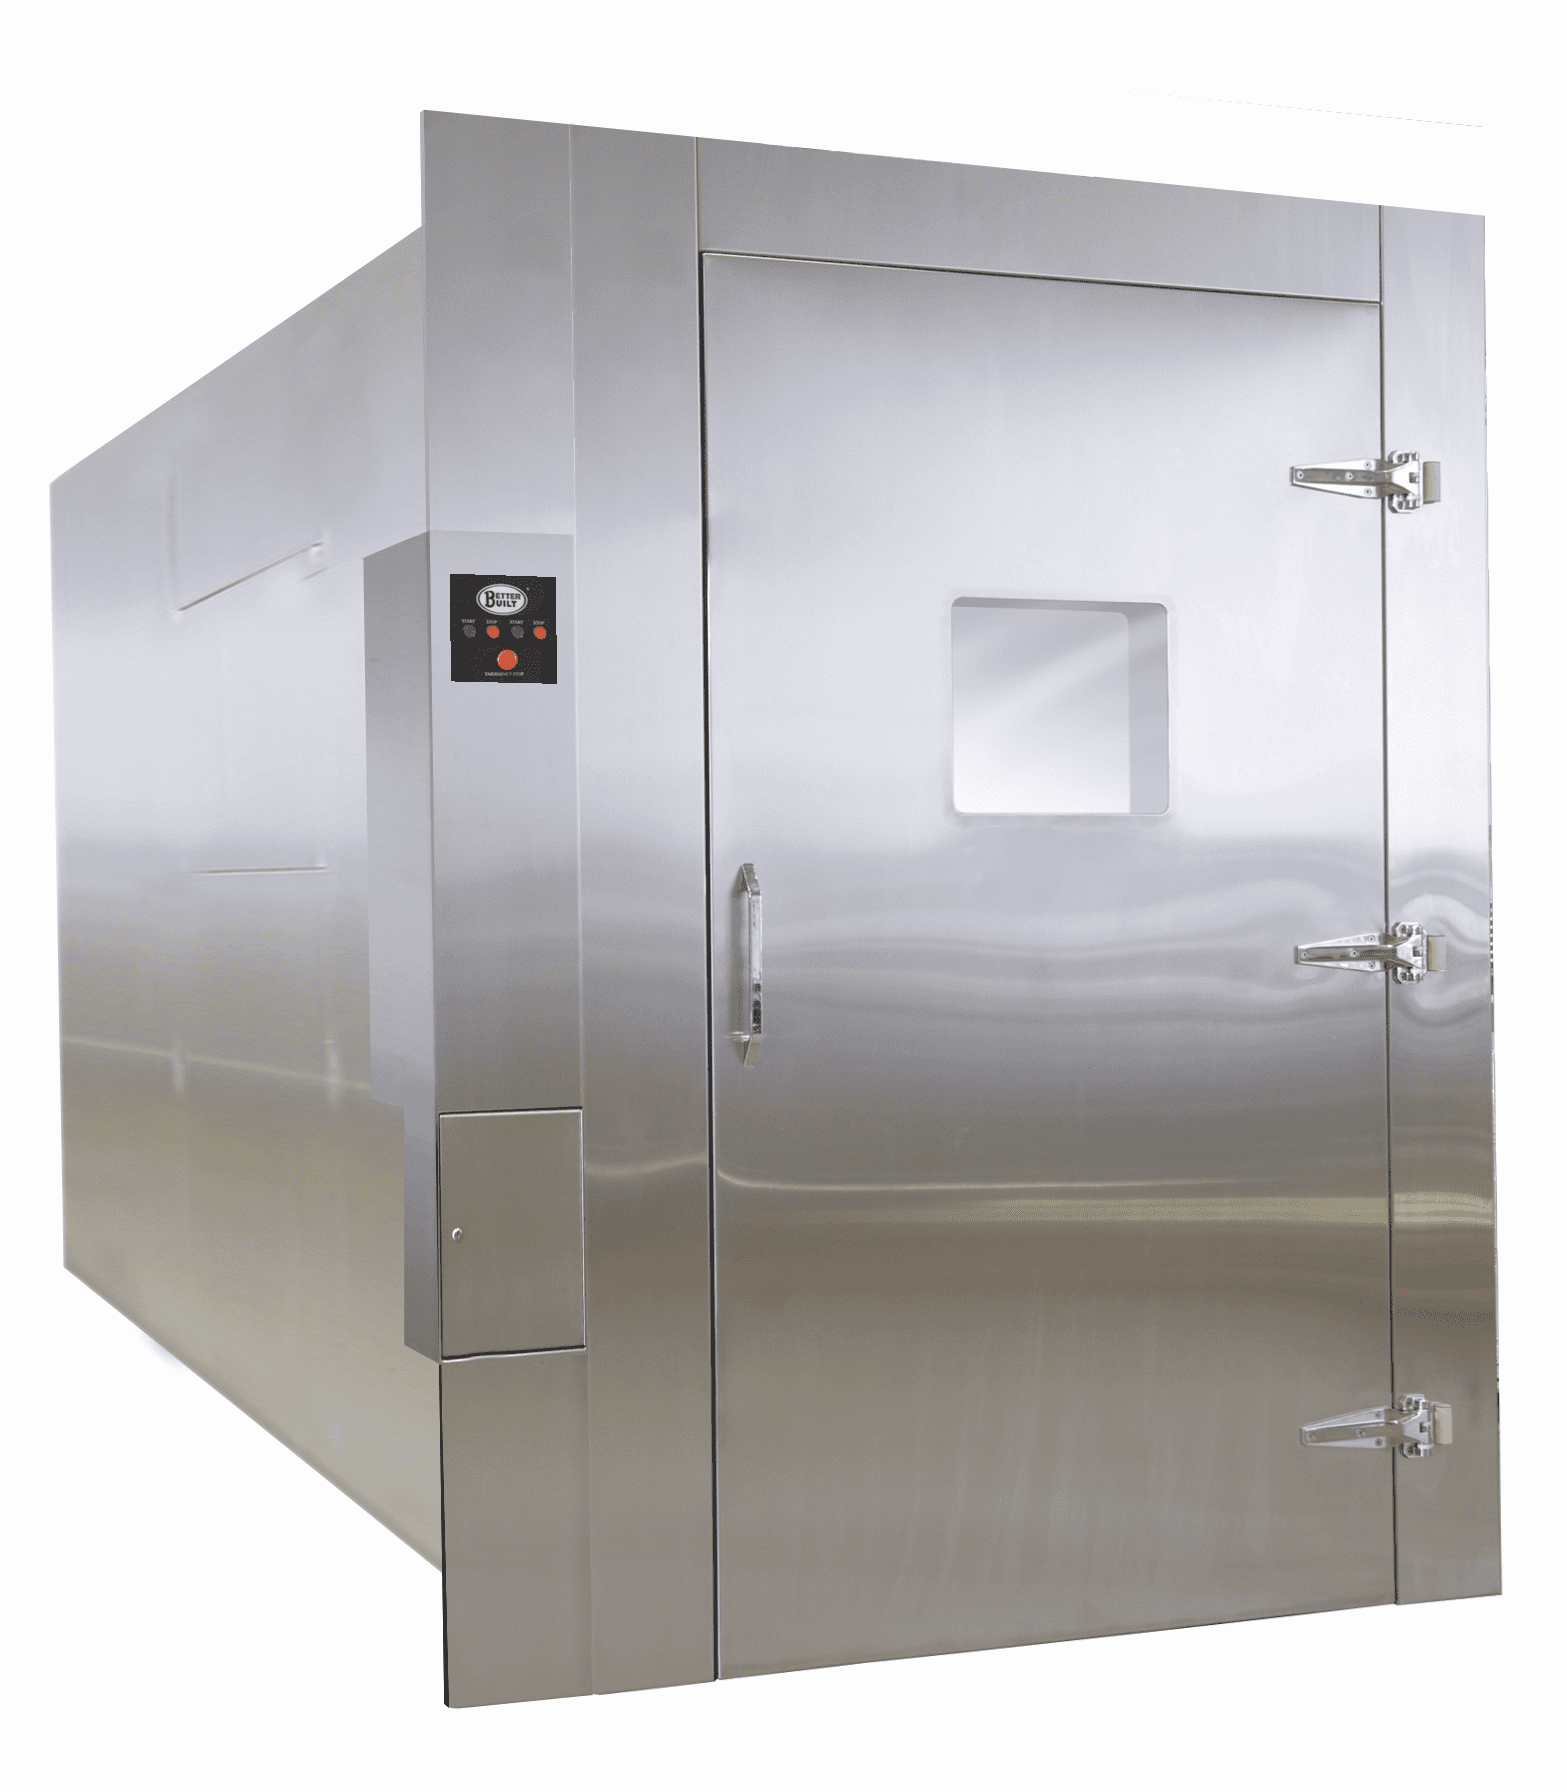 BetterBuilt D700 Series Decontamination Chamber